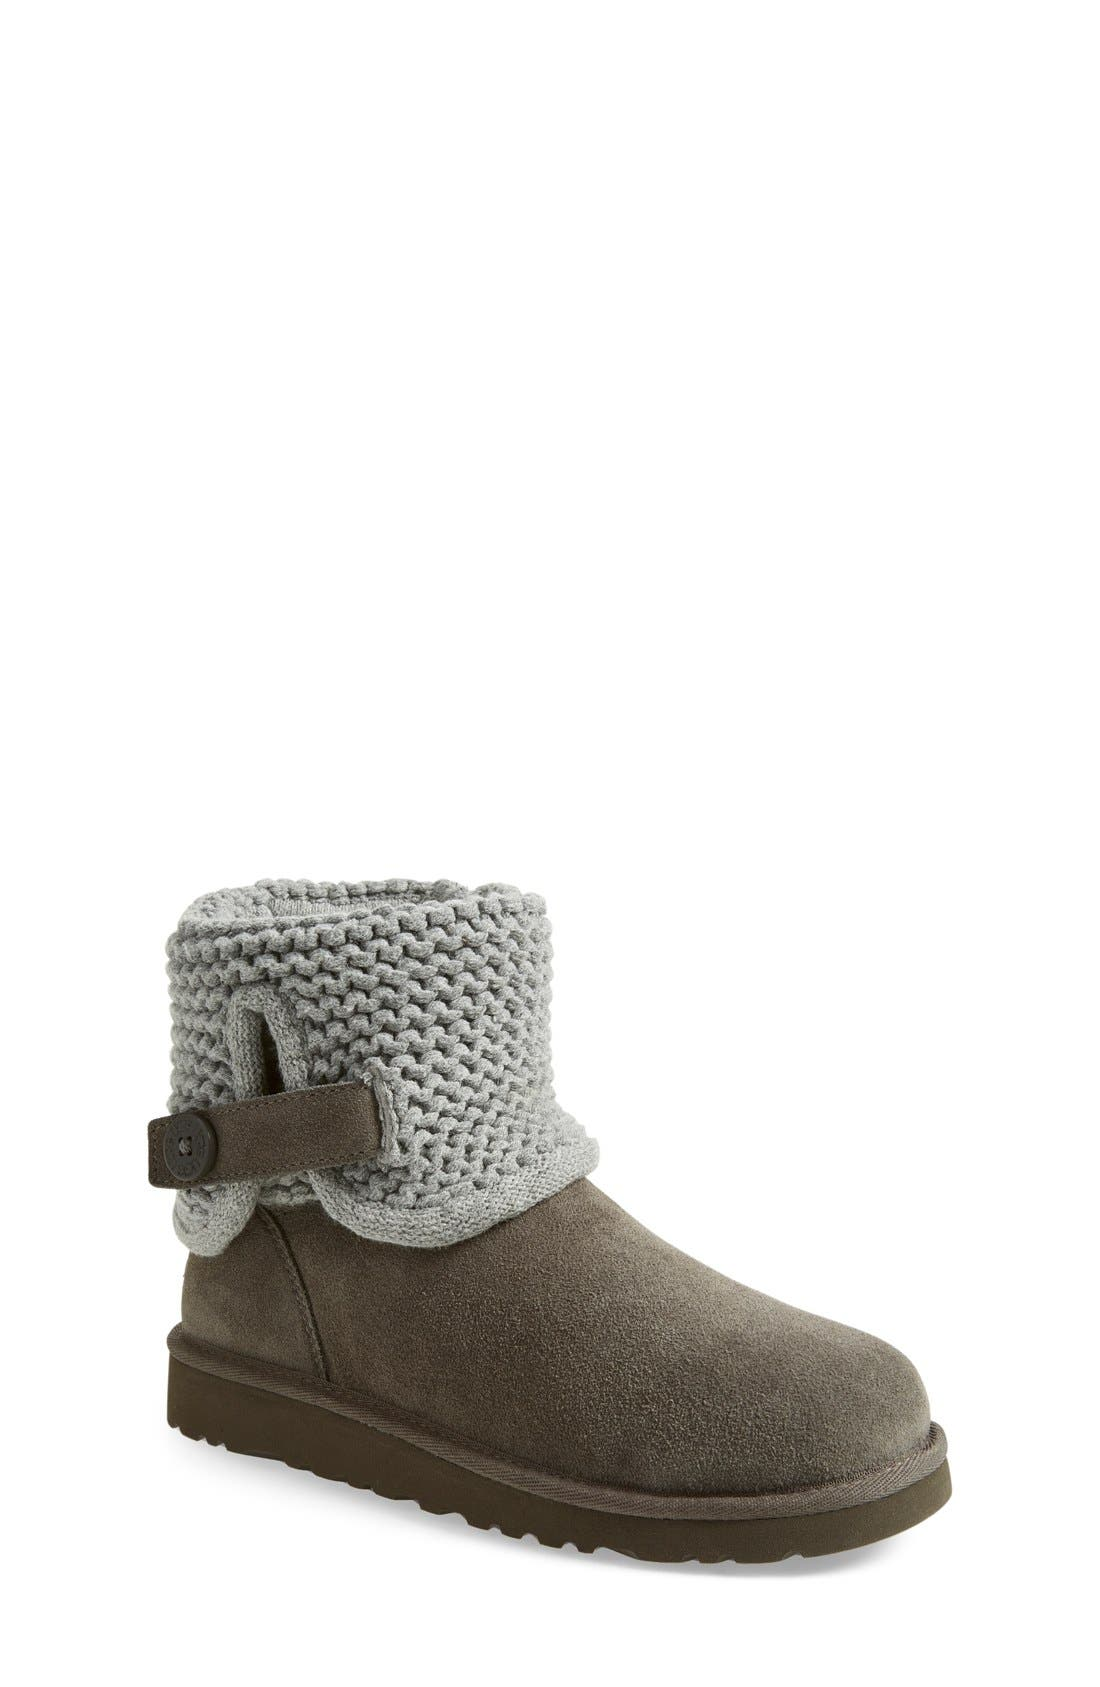 Alternate Image 1 Selected - UGG® Darrah Purl Knit Cuff Boot (Little Kid & Big Kid)